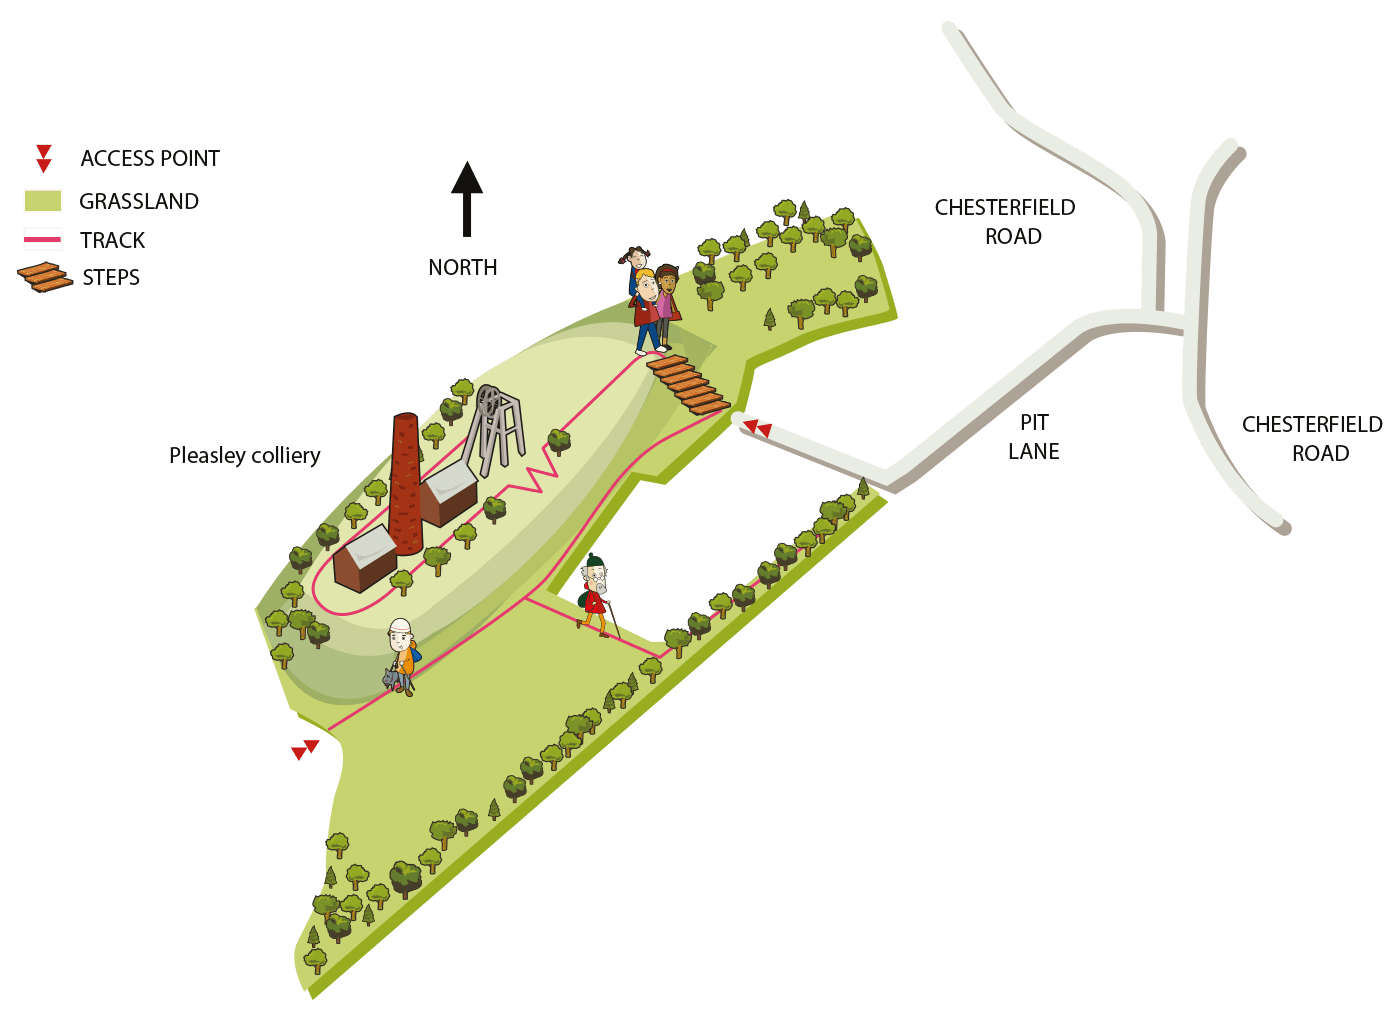 Map of Pleasley Pit